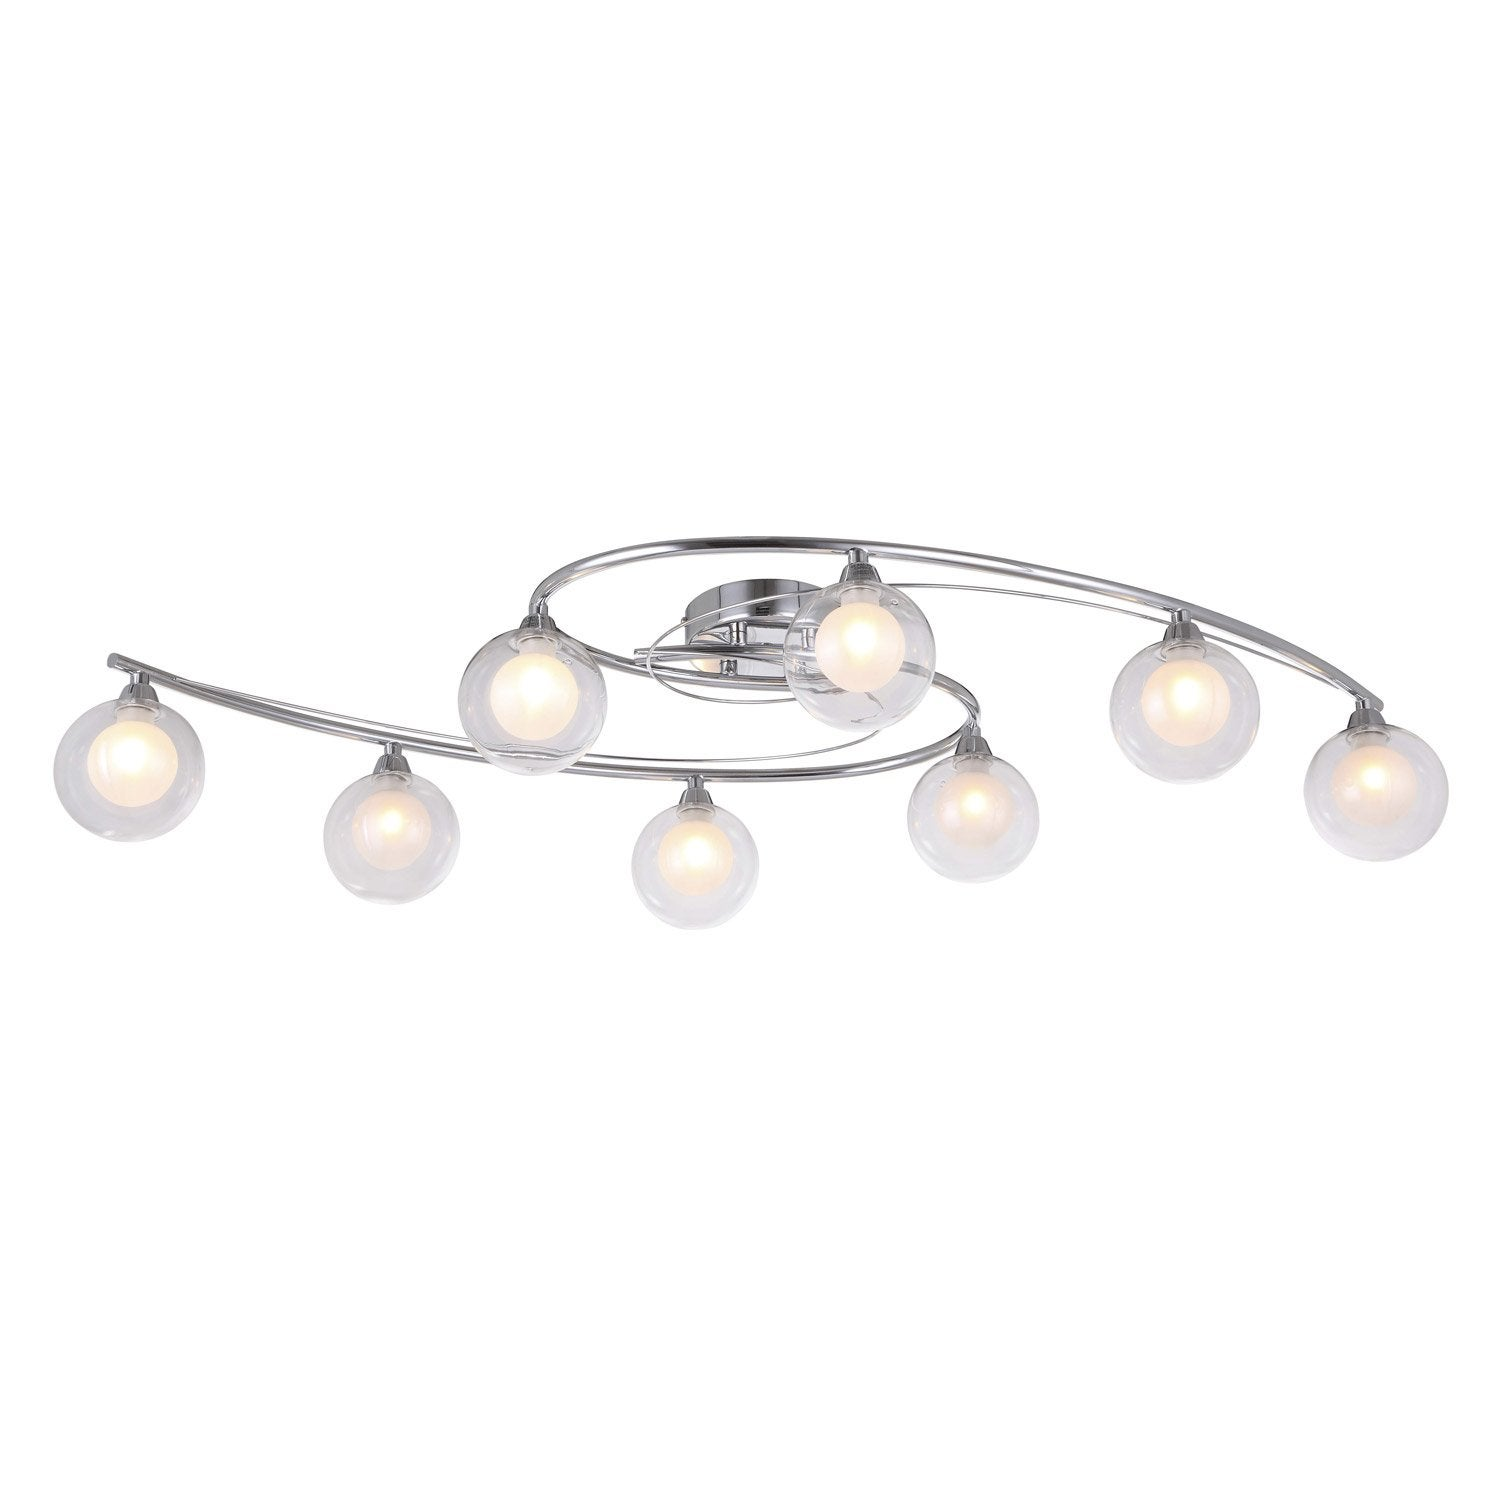 Plafonnier altea seynave chrome 33 w leroy merlin for Leroy merlin luminaire